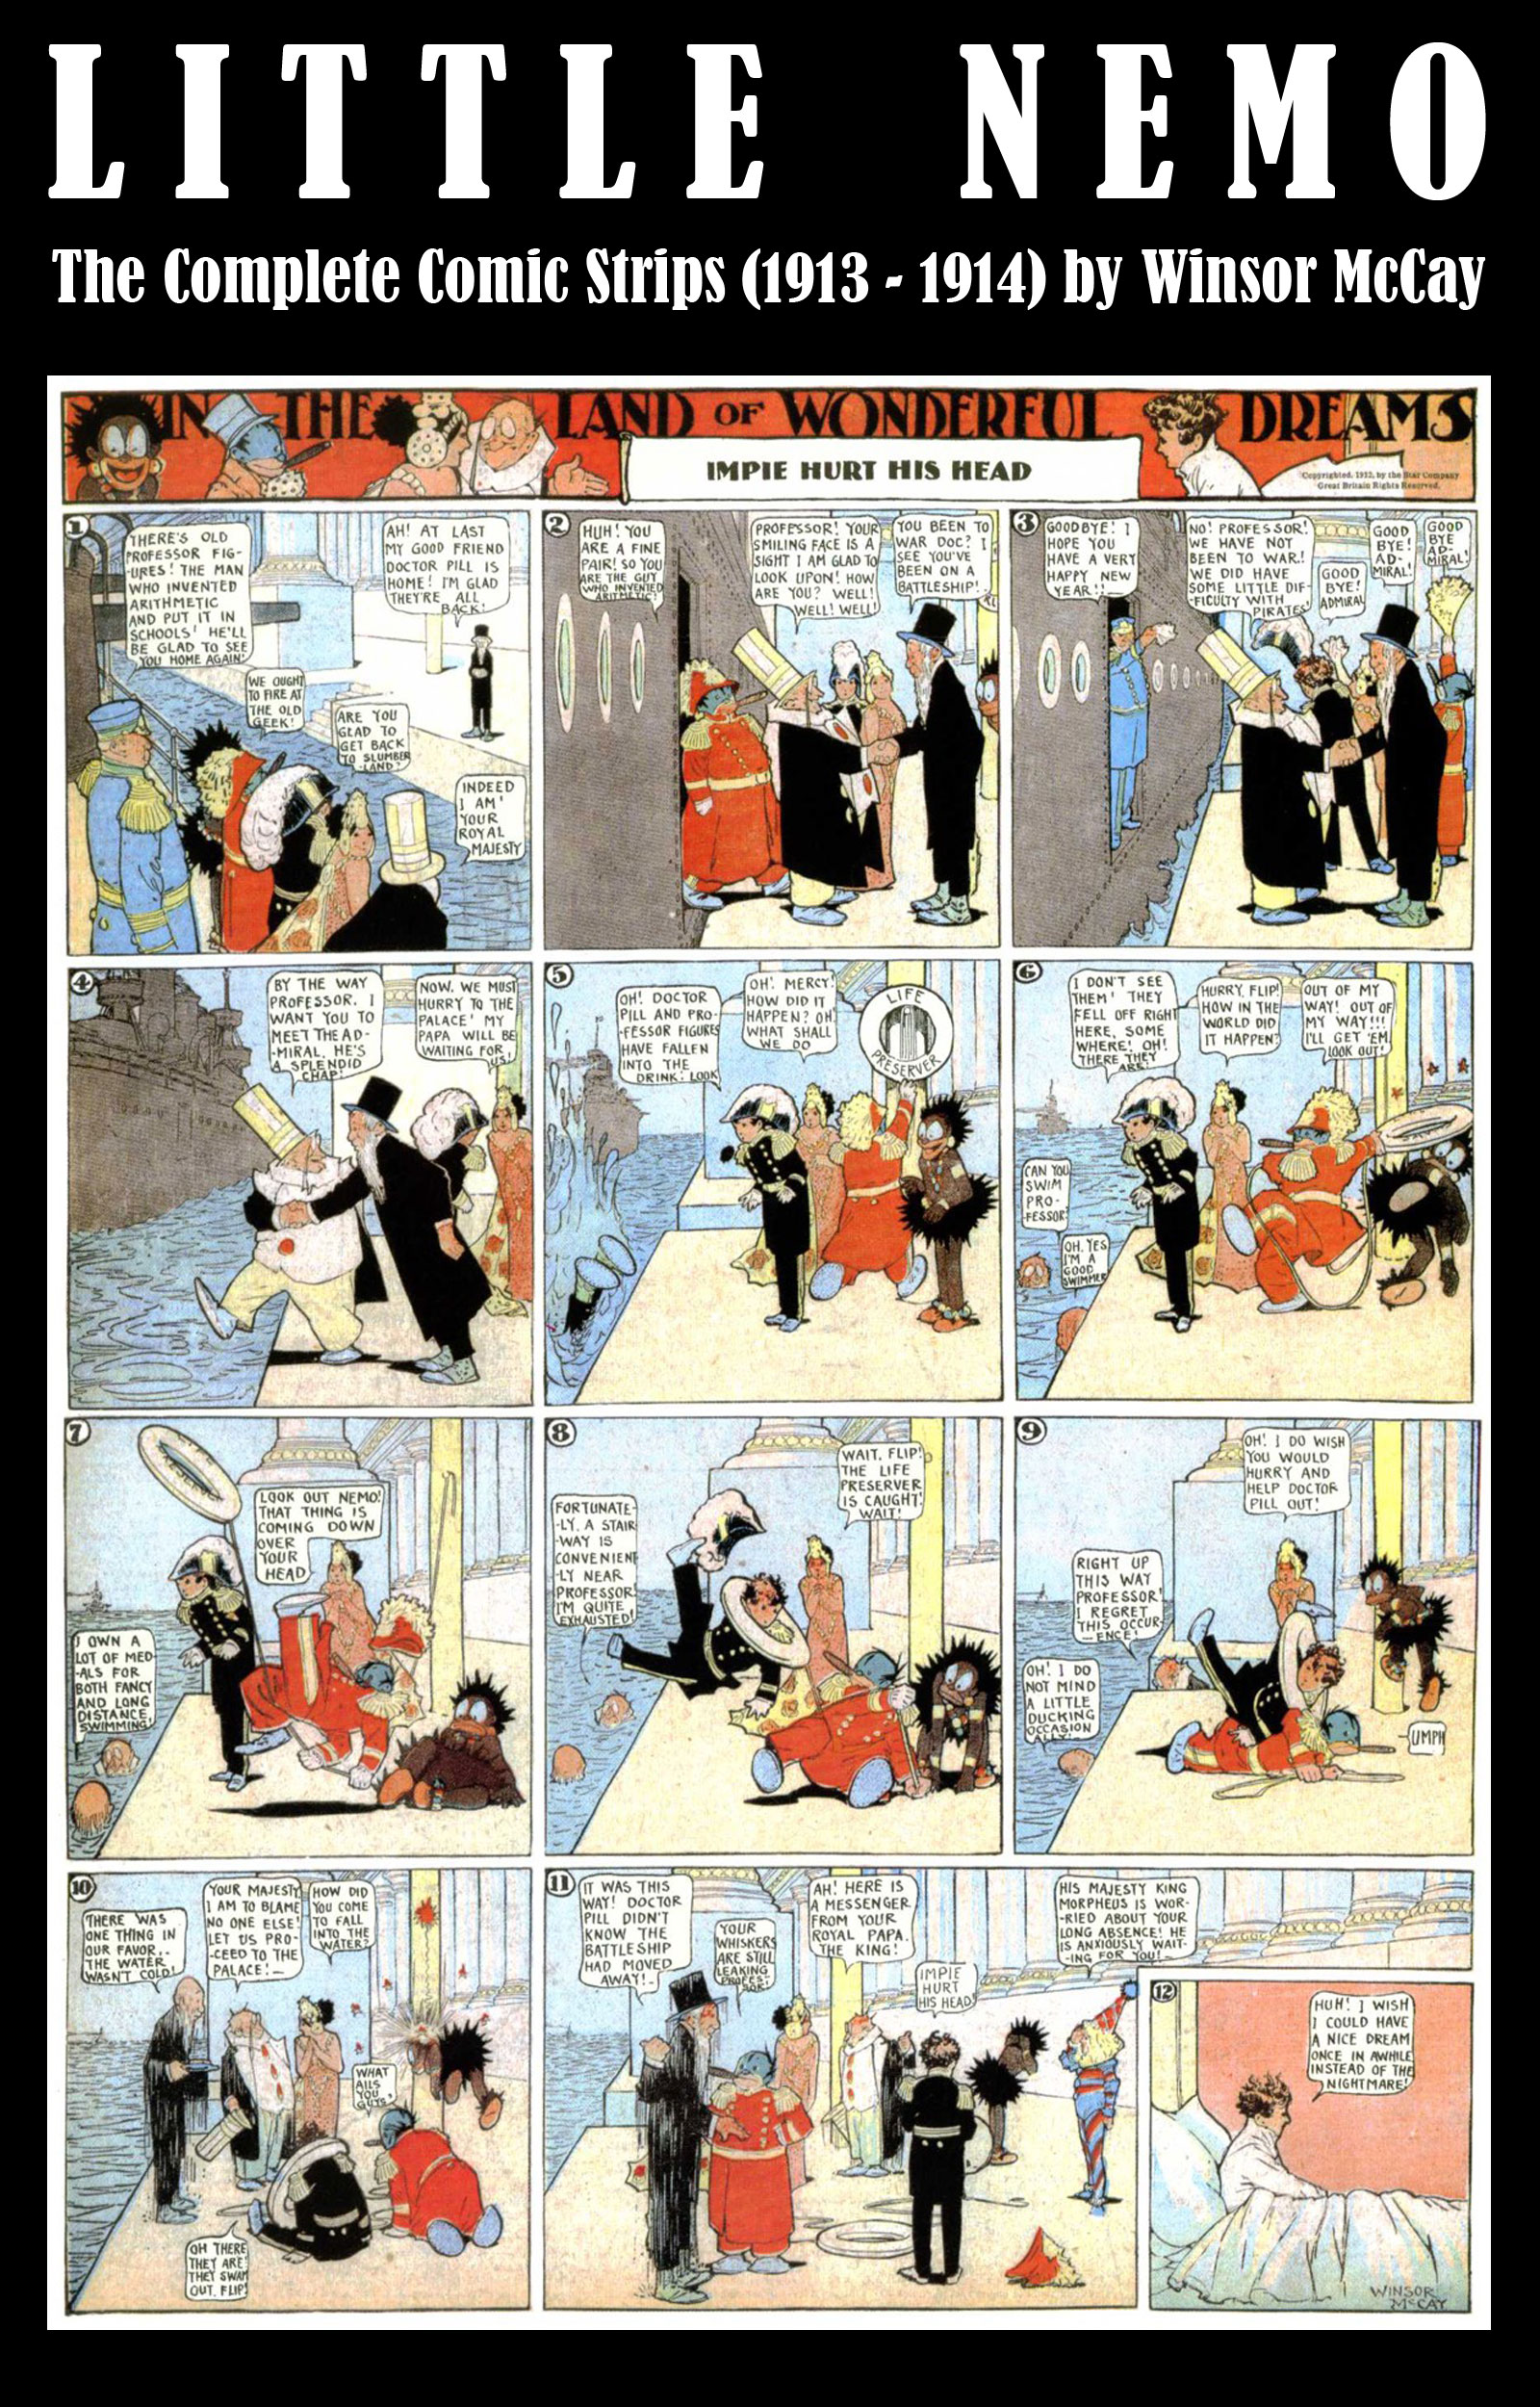 Little Nemo - The Complete Comic Strips (1913 - 1914) by Winsor McCay (Platinum Age Vintage Comics)